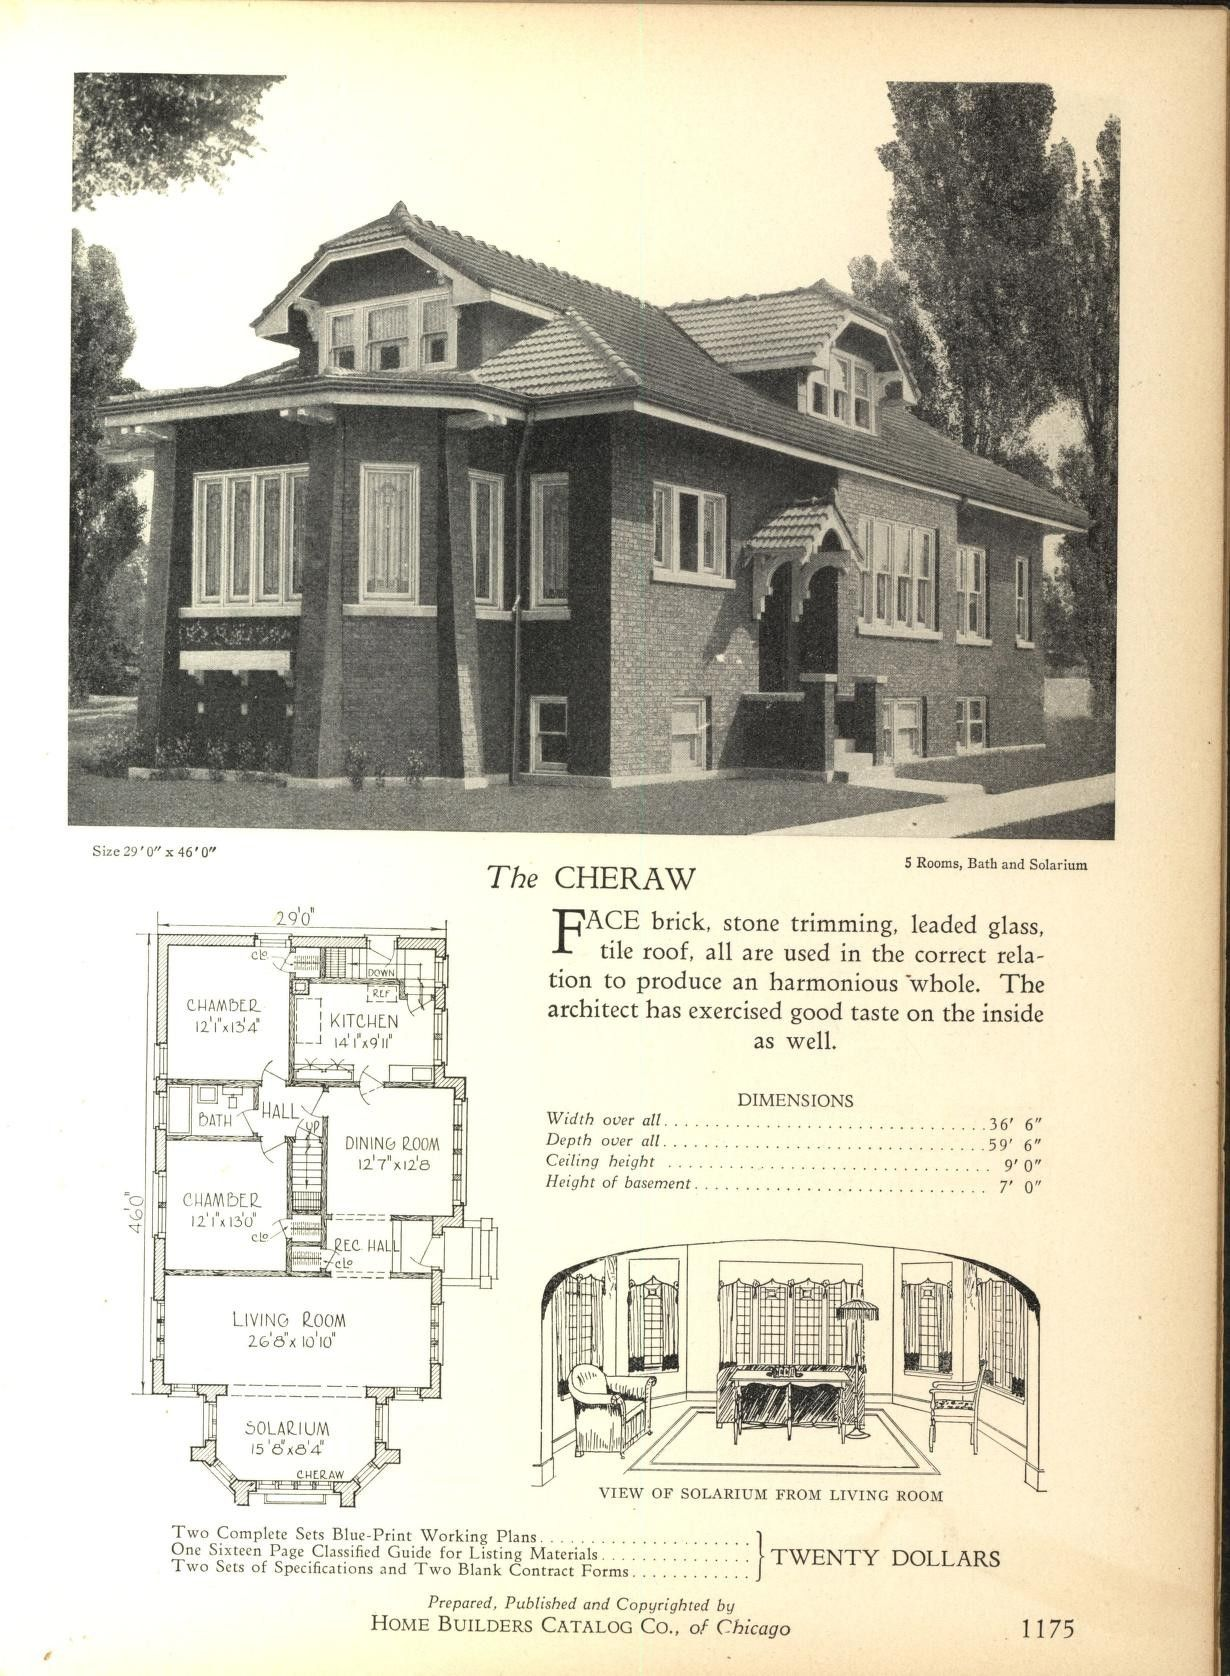 1928 Home Builders Catalog Home Plan The Cheraw A Very Obvious Design Of One Of Many Styles Of Ch Bungalow Floor Plans Bungalow House Plans Chicago Bungalow